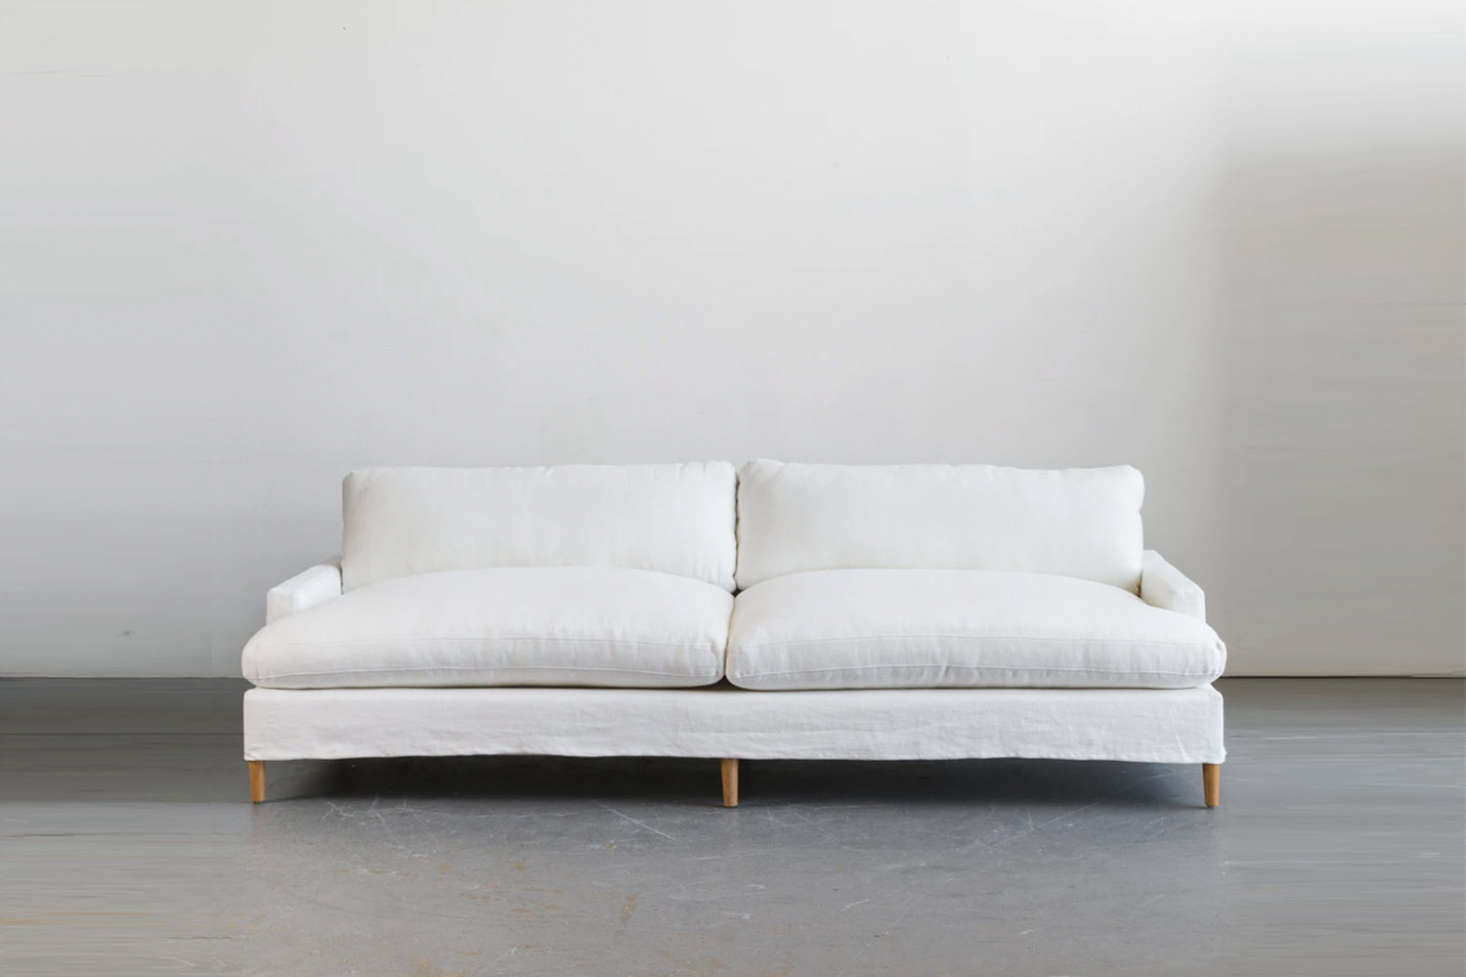 From Shoppe by Amber Interiors, the Bille Slipcover Sofa starts at $5,900.